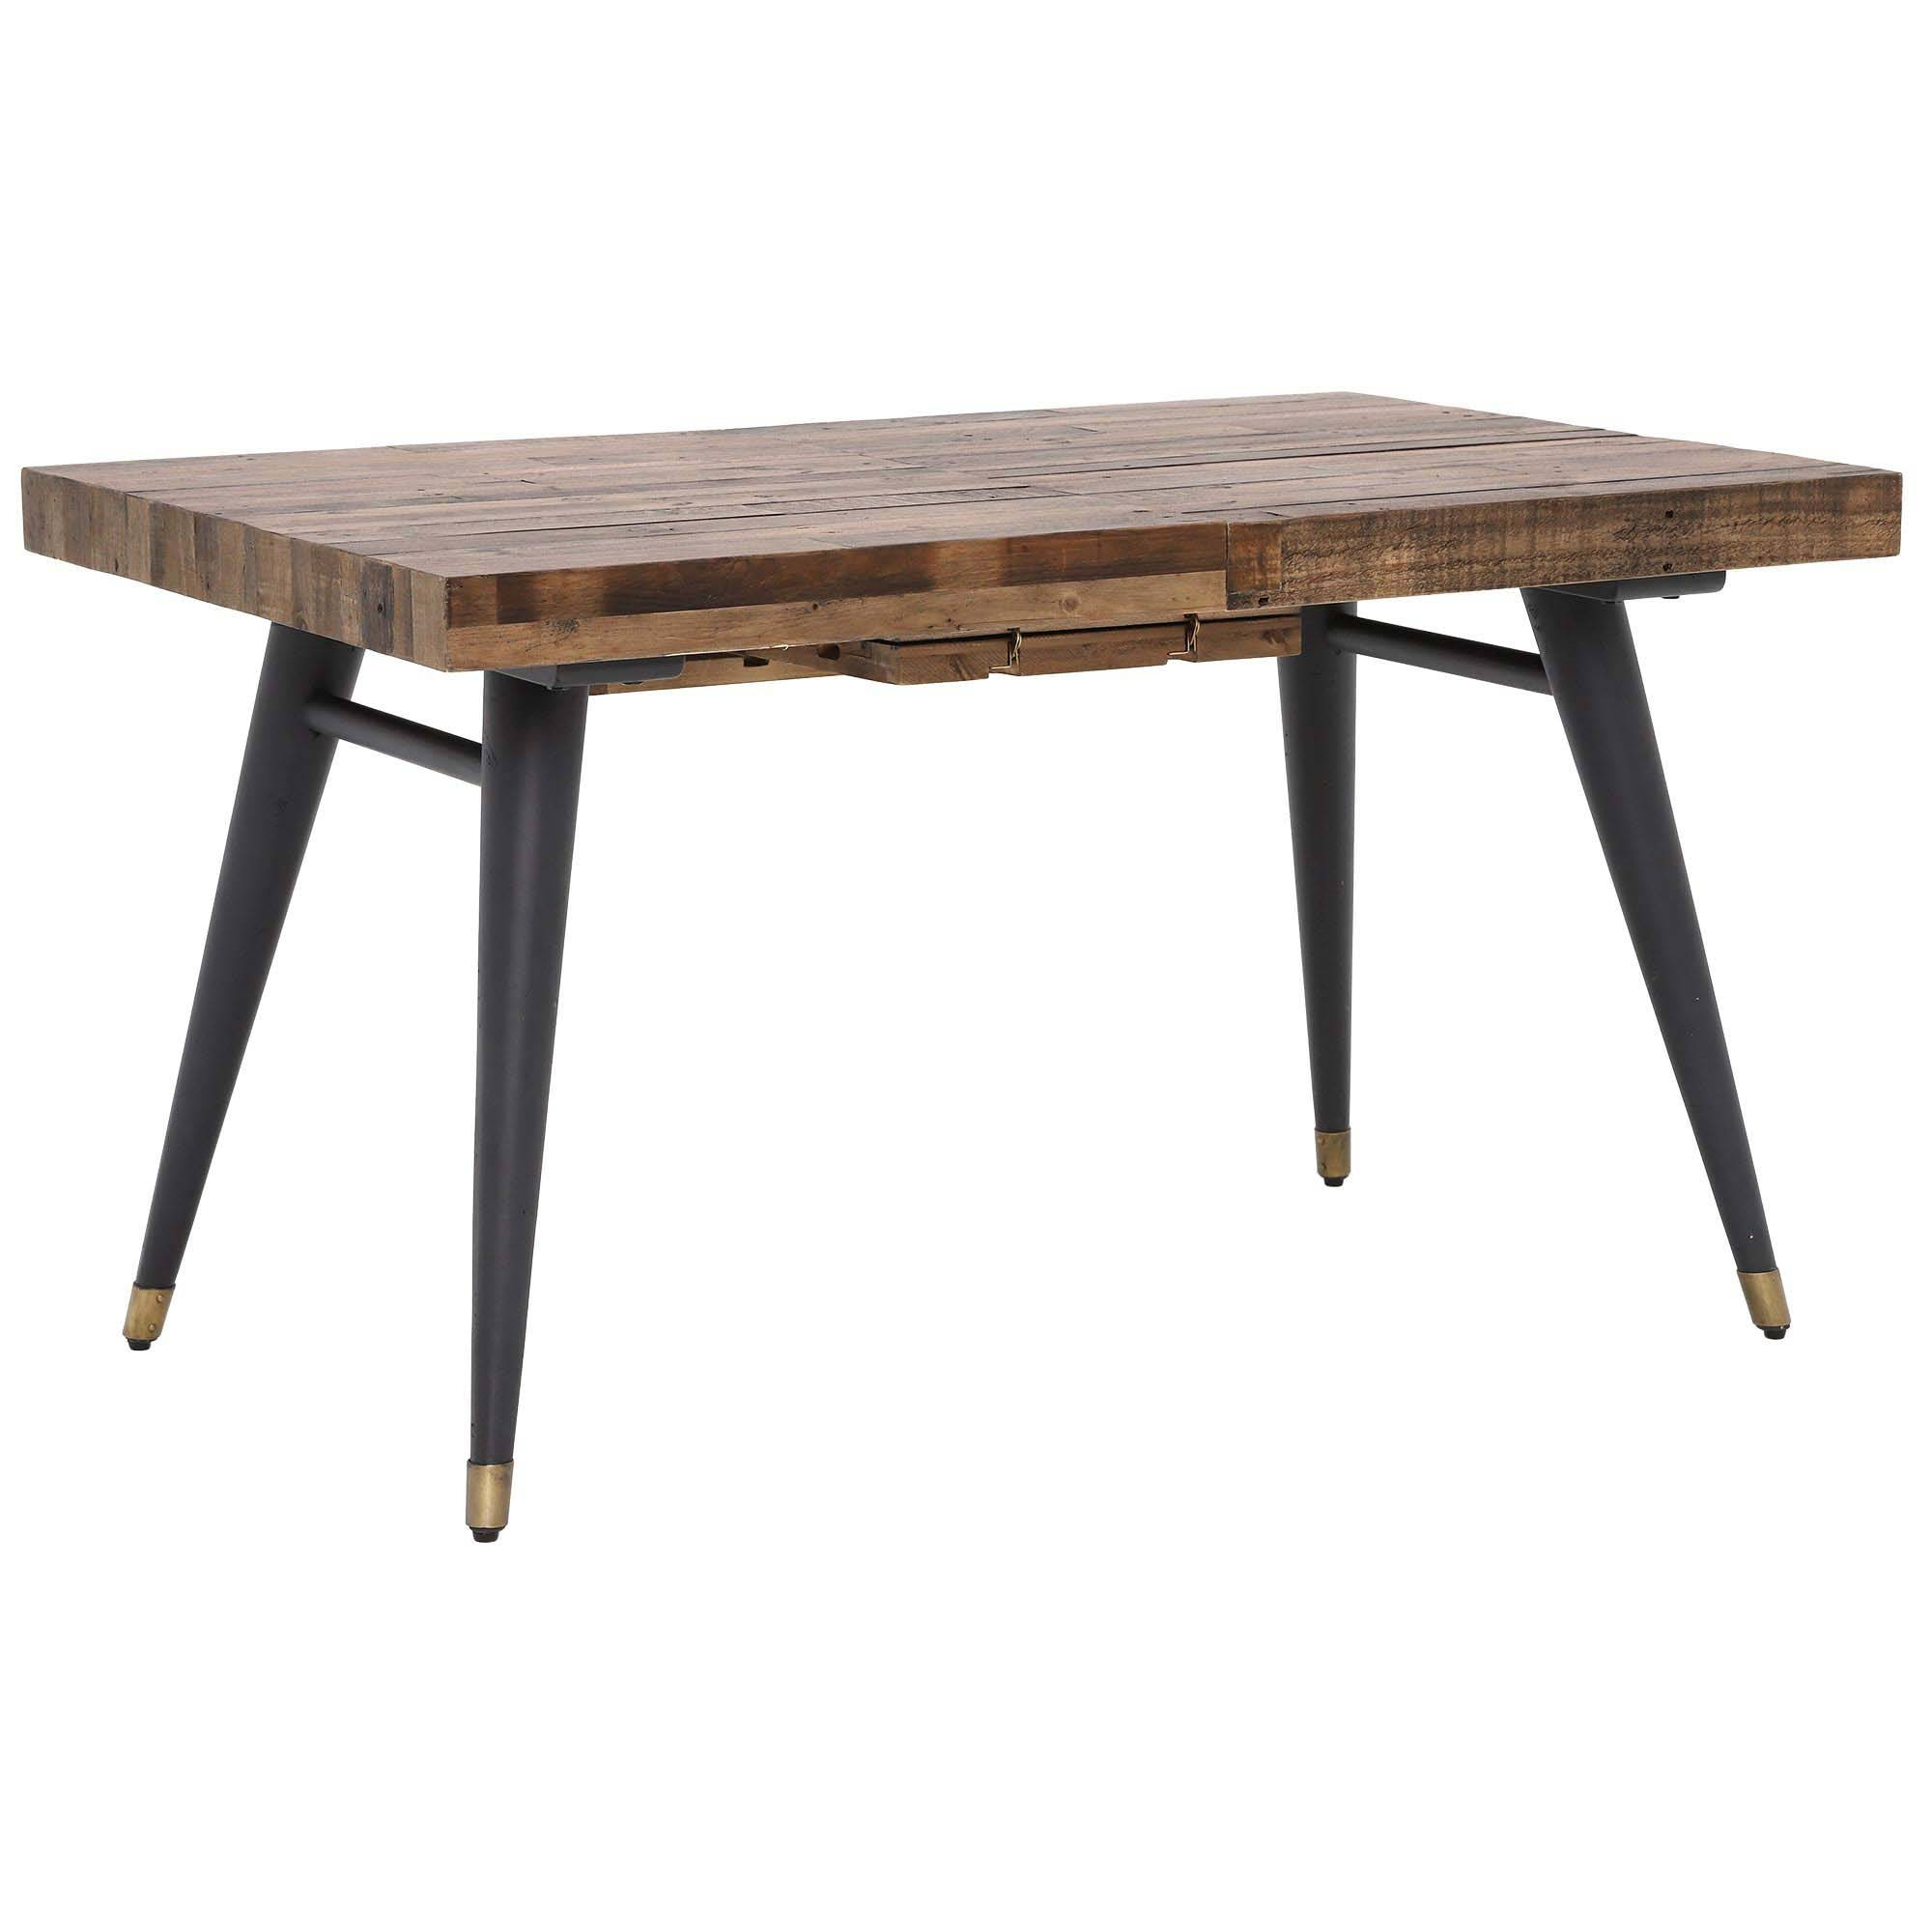 Furniture Dining Room Reclaimed Extending Table Wood Within Recent Hart Reclaimed Wood Extending Dining Tables (Image 11 of 25)